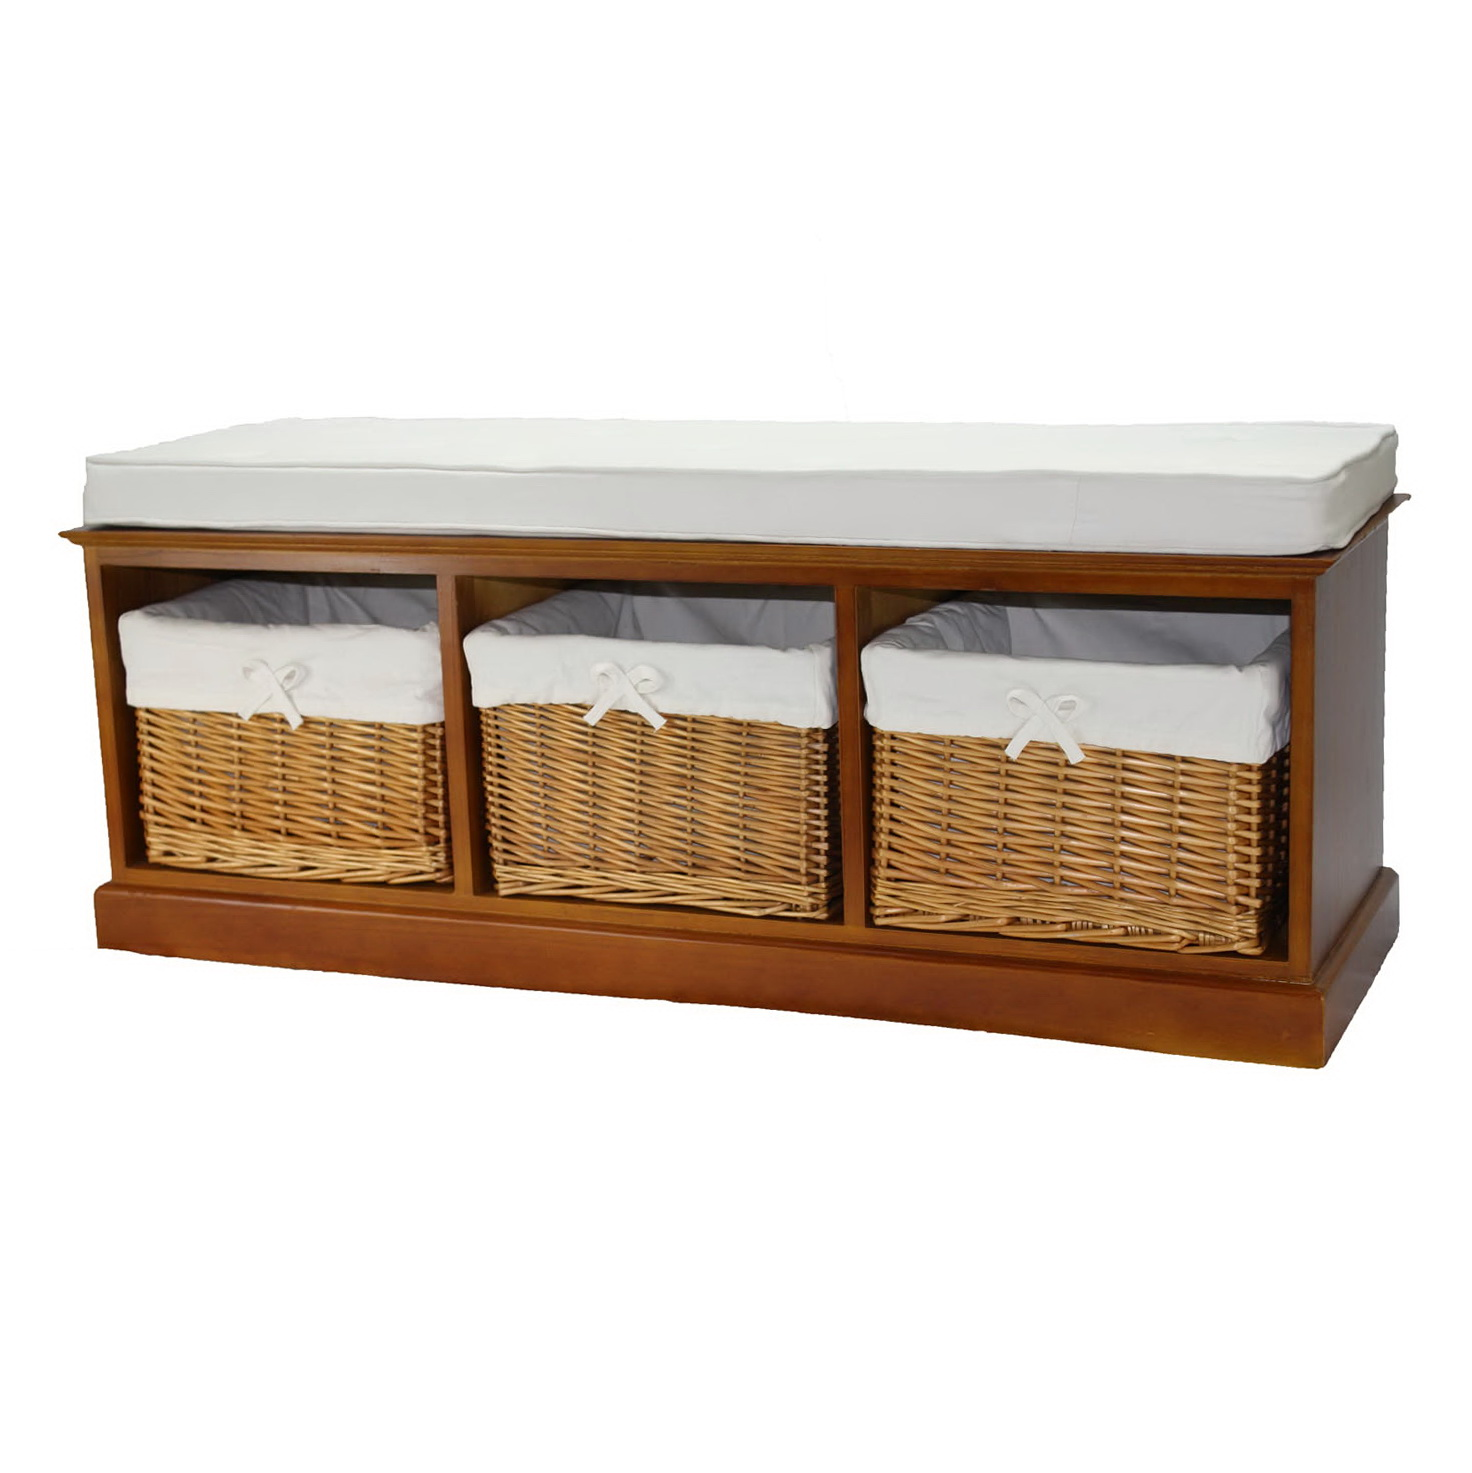 Storage bench with baskets home design ideas Bench with baskets